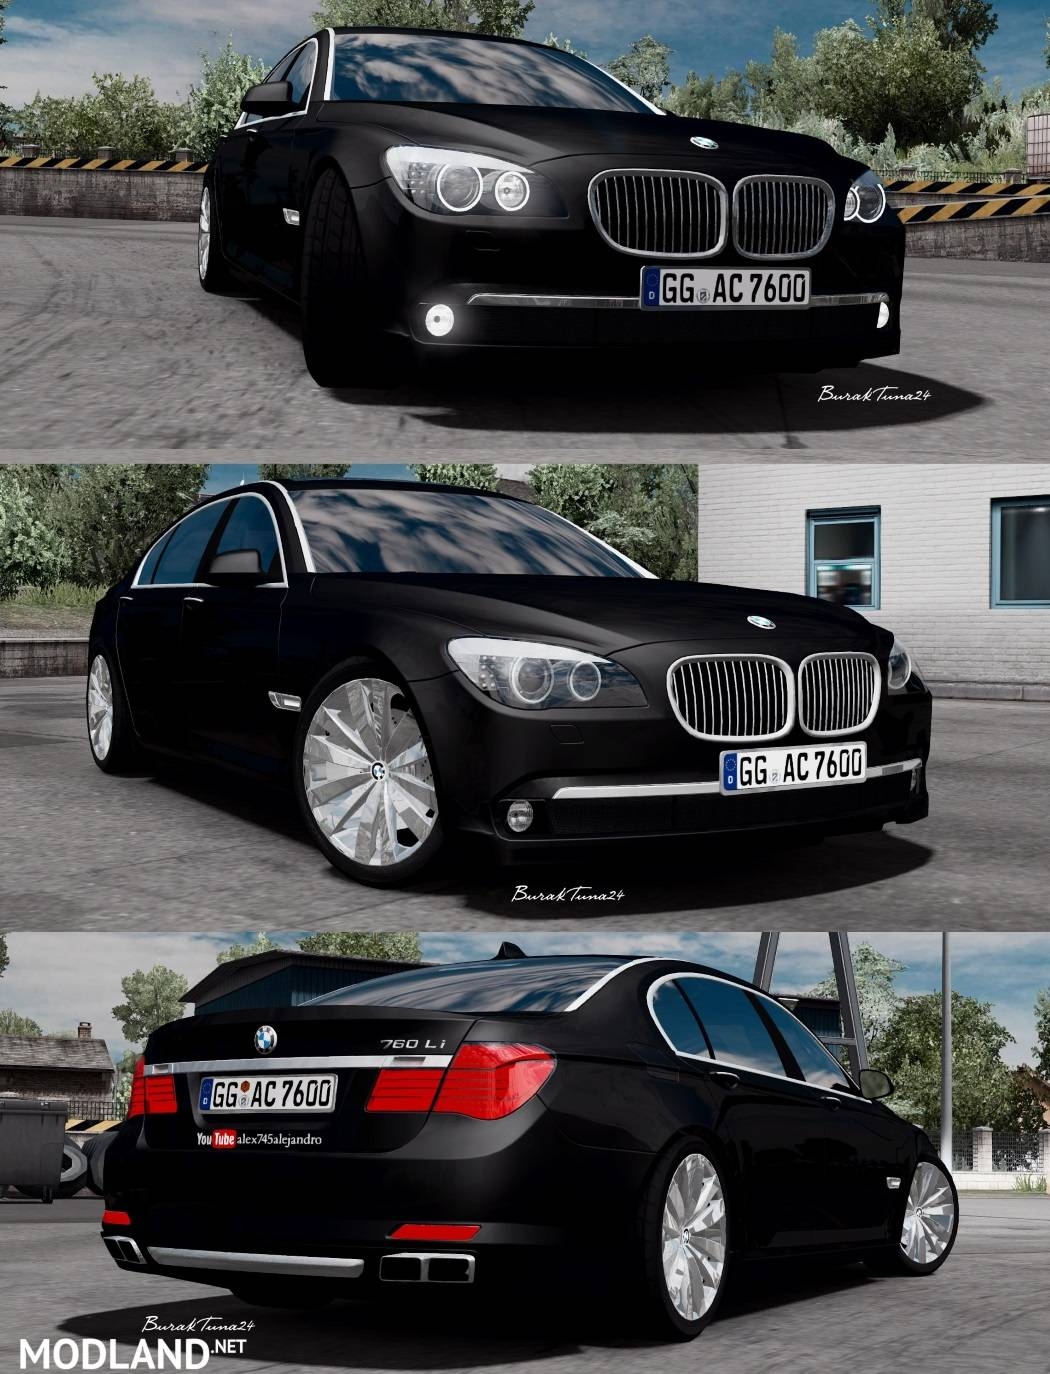 ETS2 Bmw 760li V12 Alex745alejandro 1 Photo